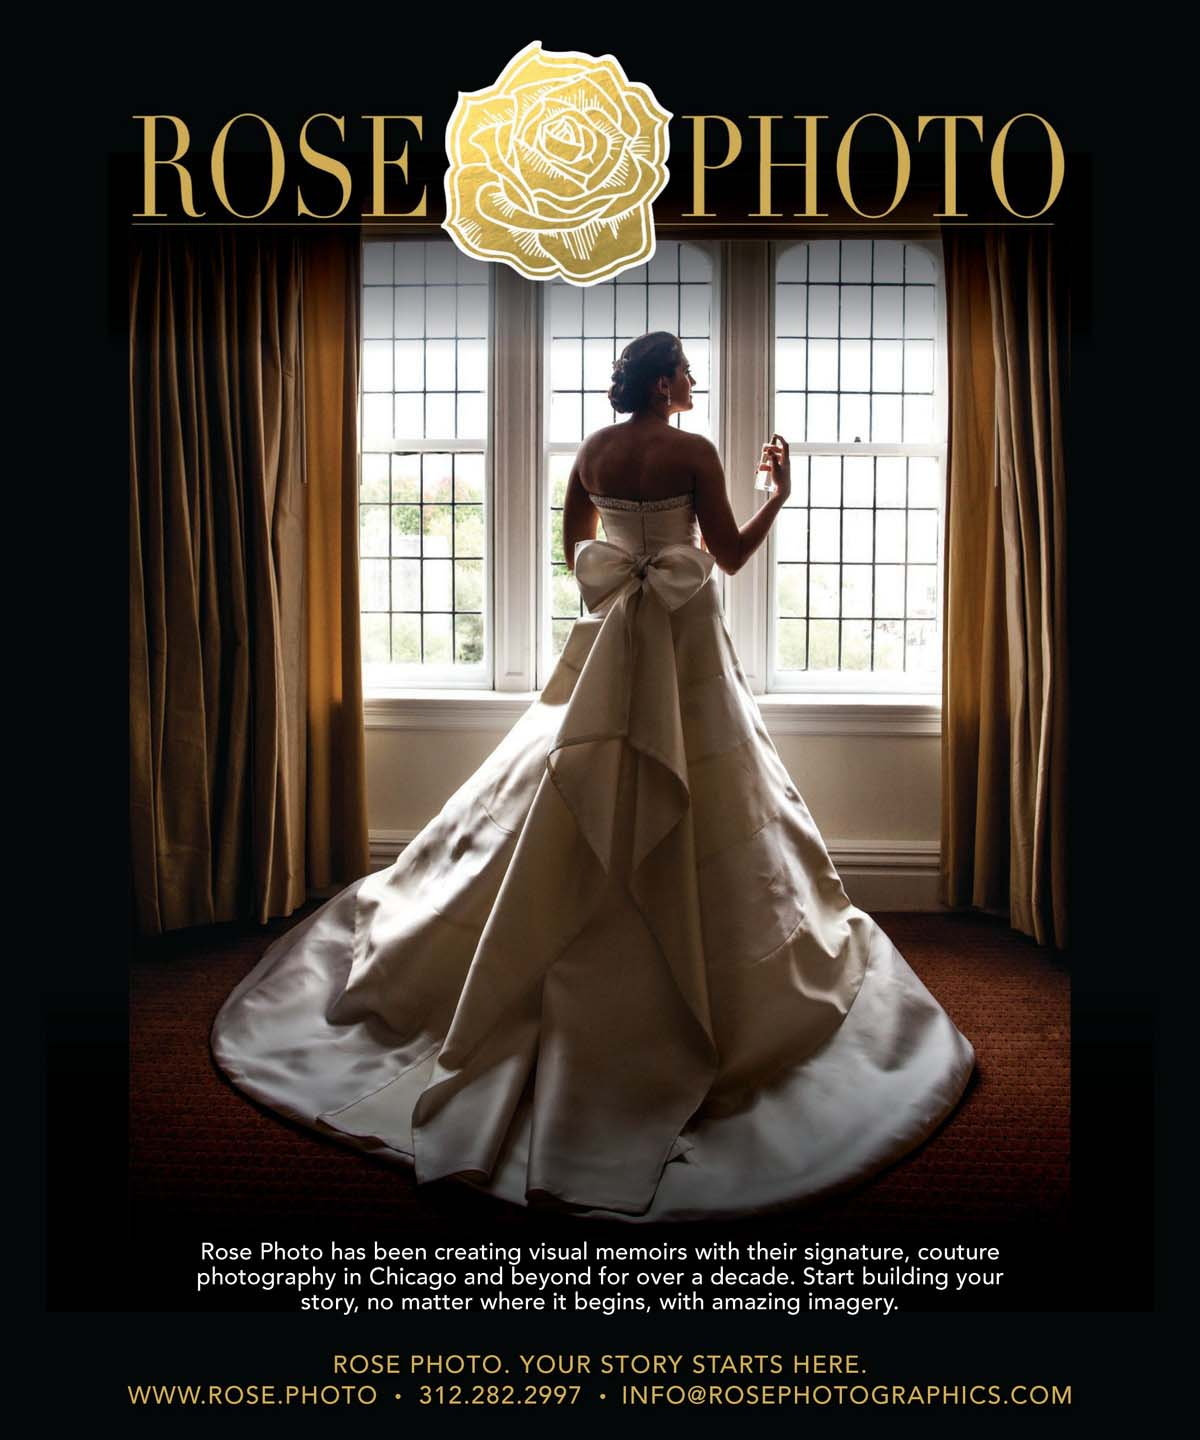 Downtown Luxury WEDDINGS Chicago Photographer- SS 2018 Issue - Rose Photo Complete Coverage-9.jpg